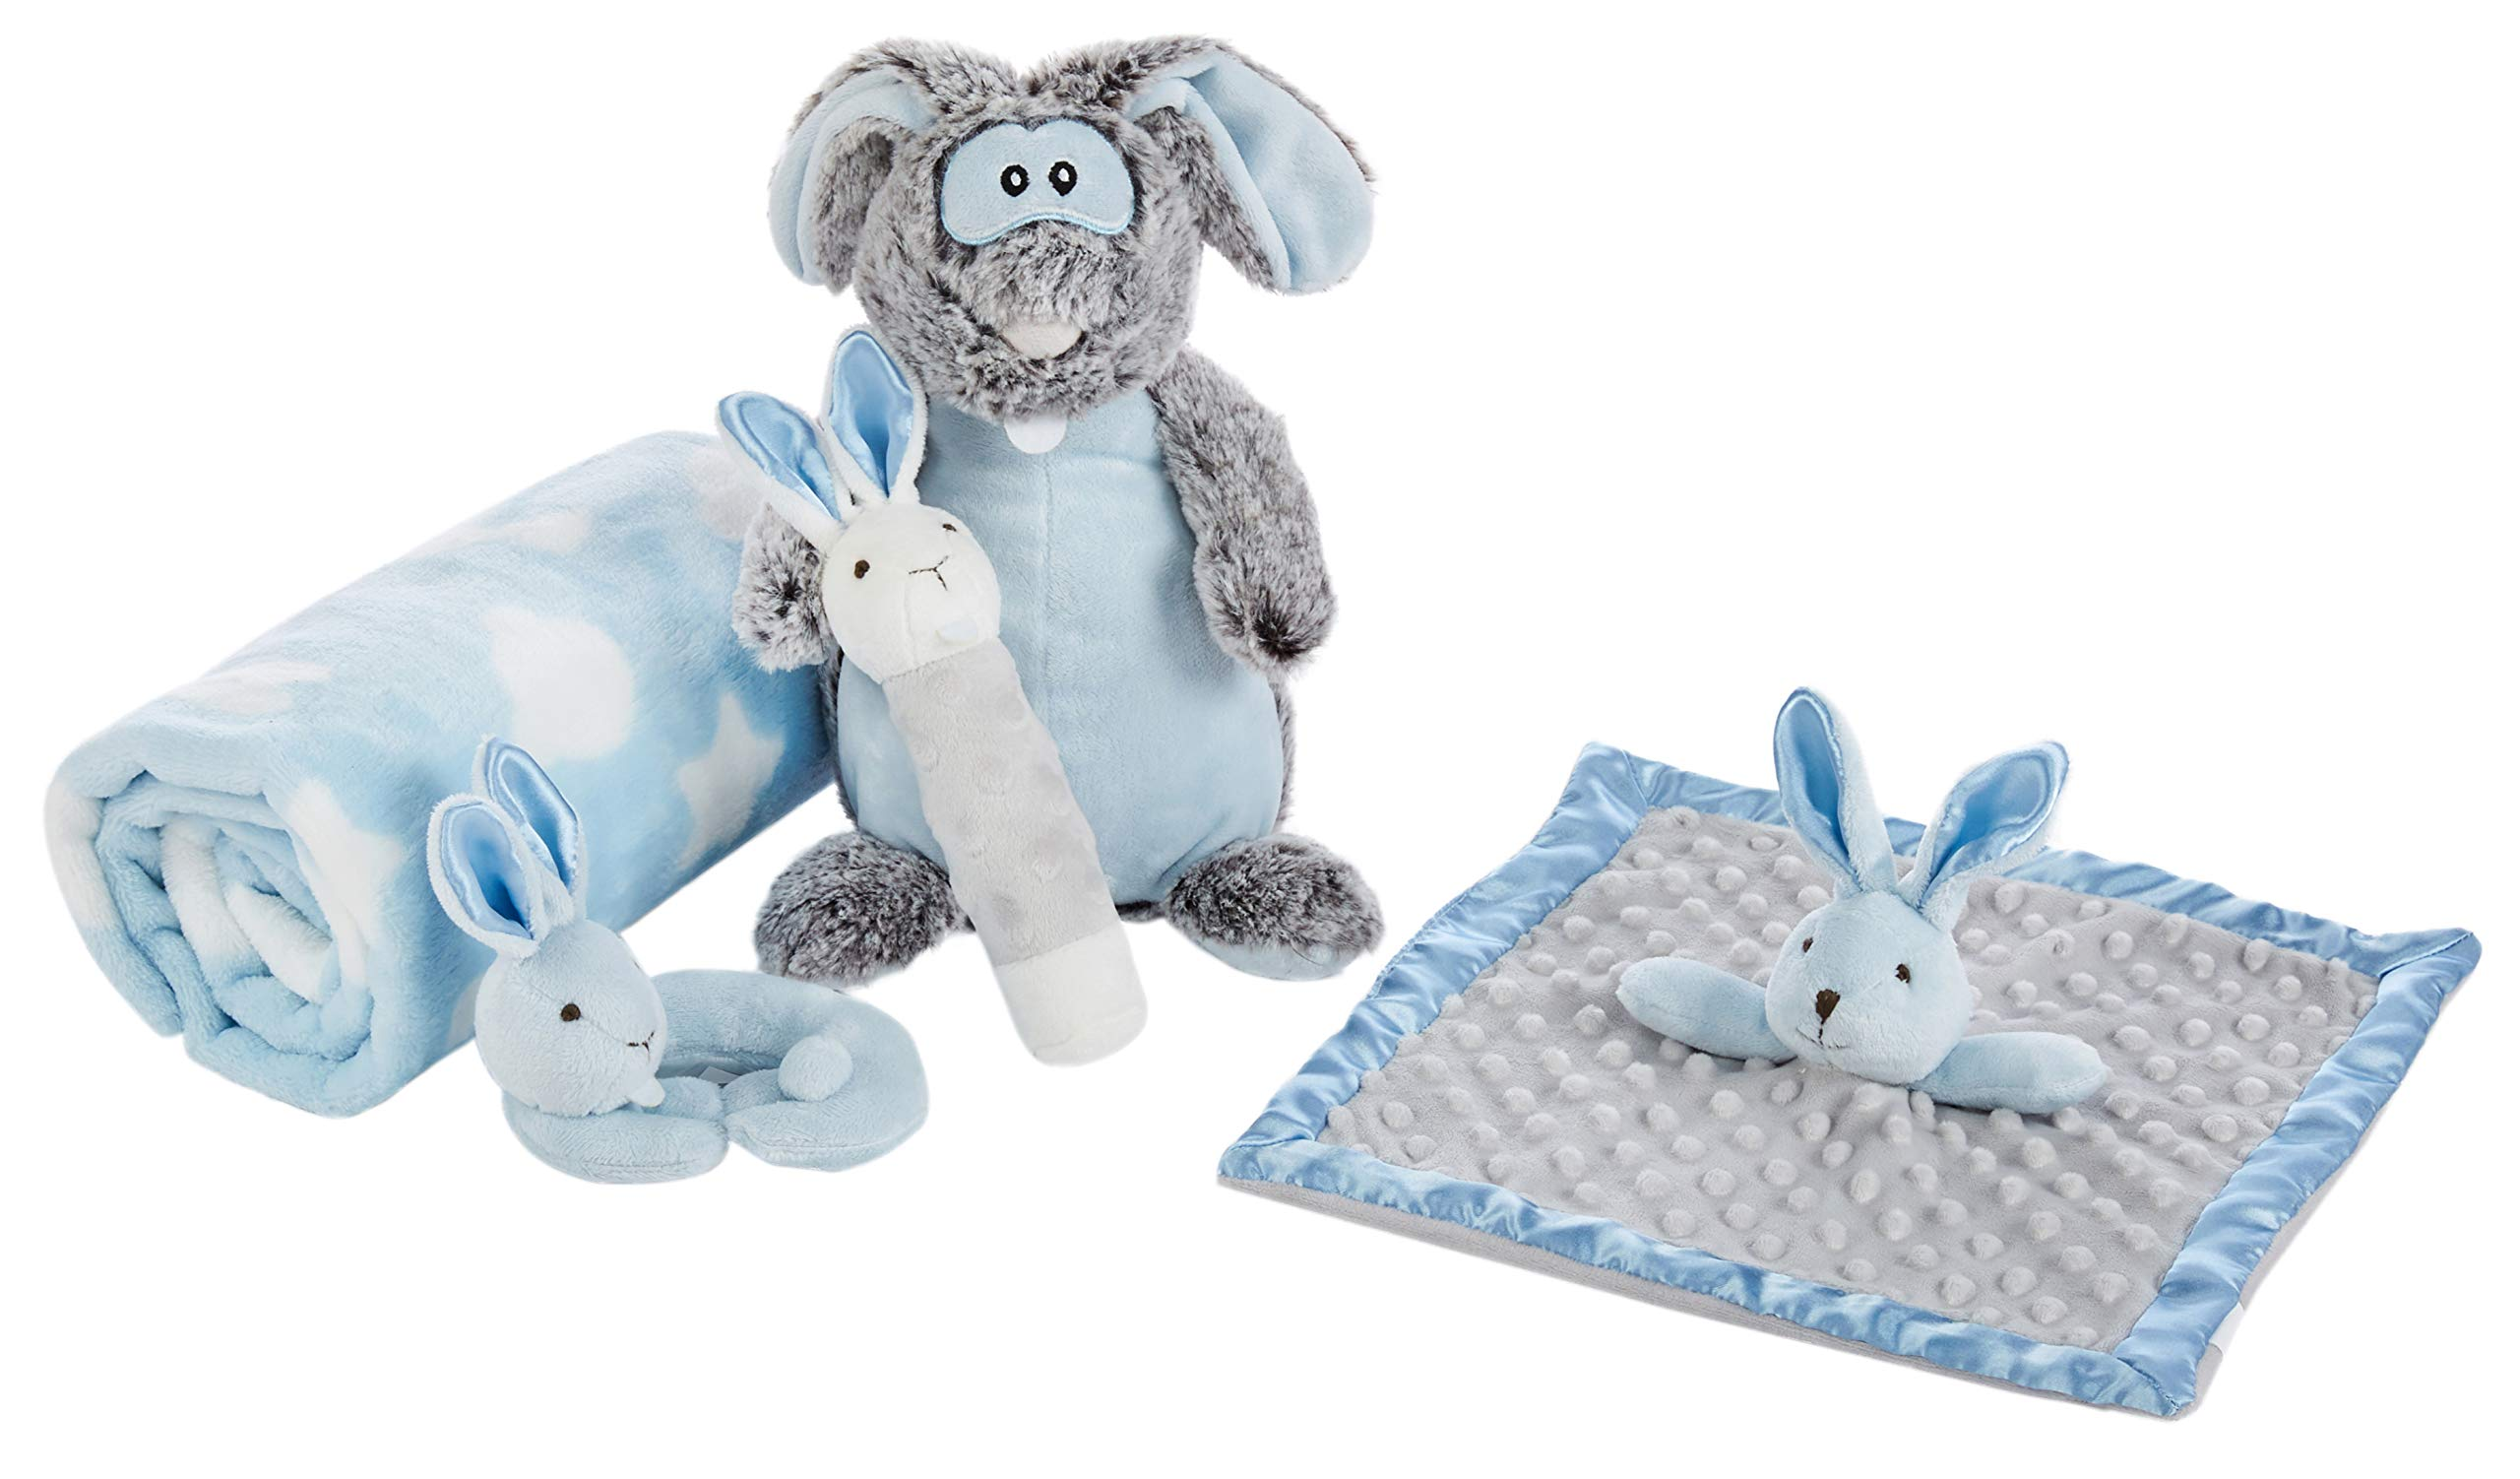 Baby Brielle 5 Piece Essentials Easter Gift Set with Plush Fleece Blanket Boy Security Soothing Lovies Rattles Stuffed Bunny Animal Toy + Greeting Card Gift Set for Babies, Blue